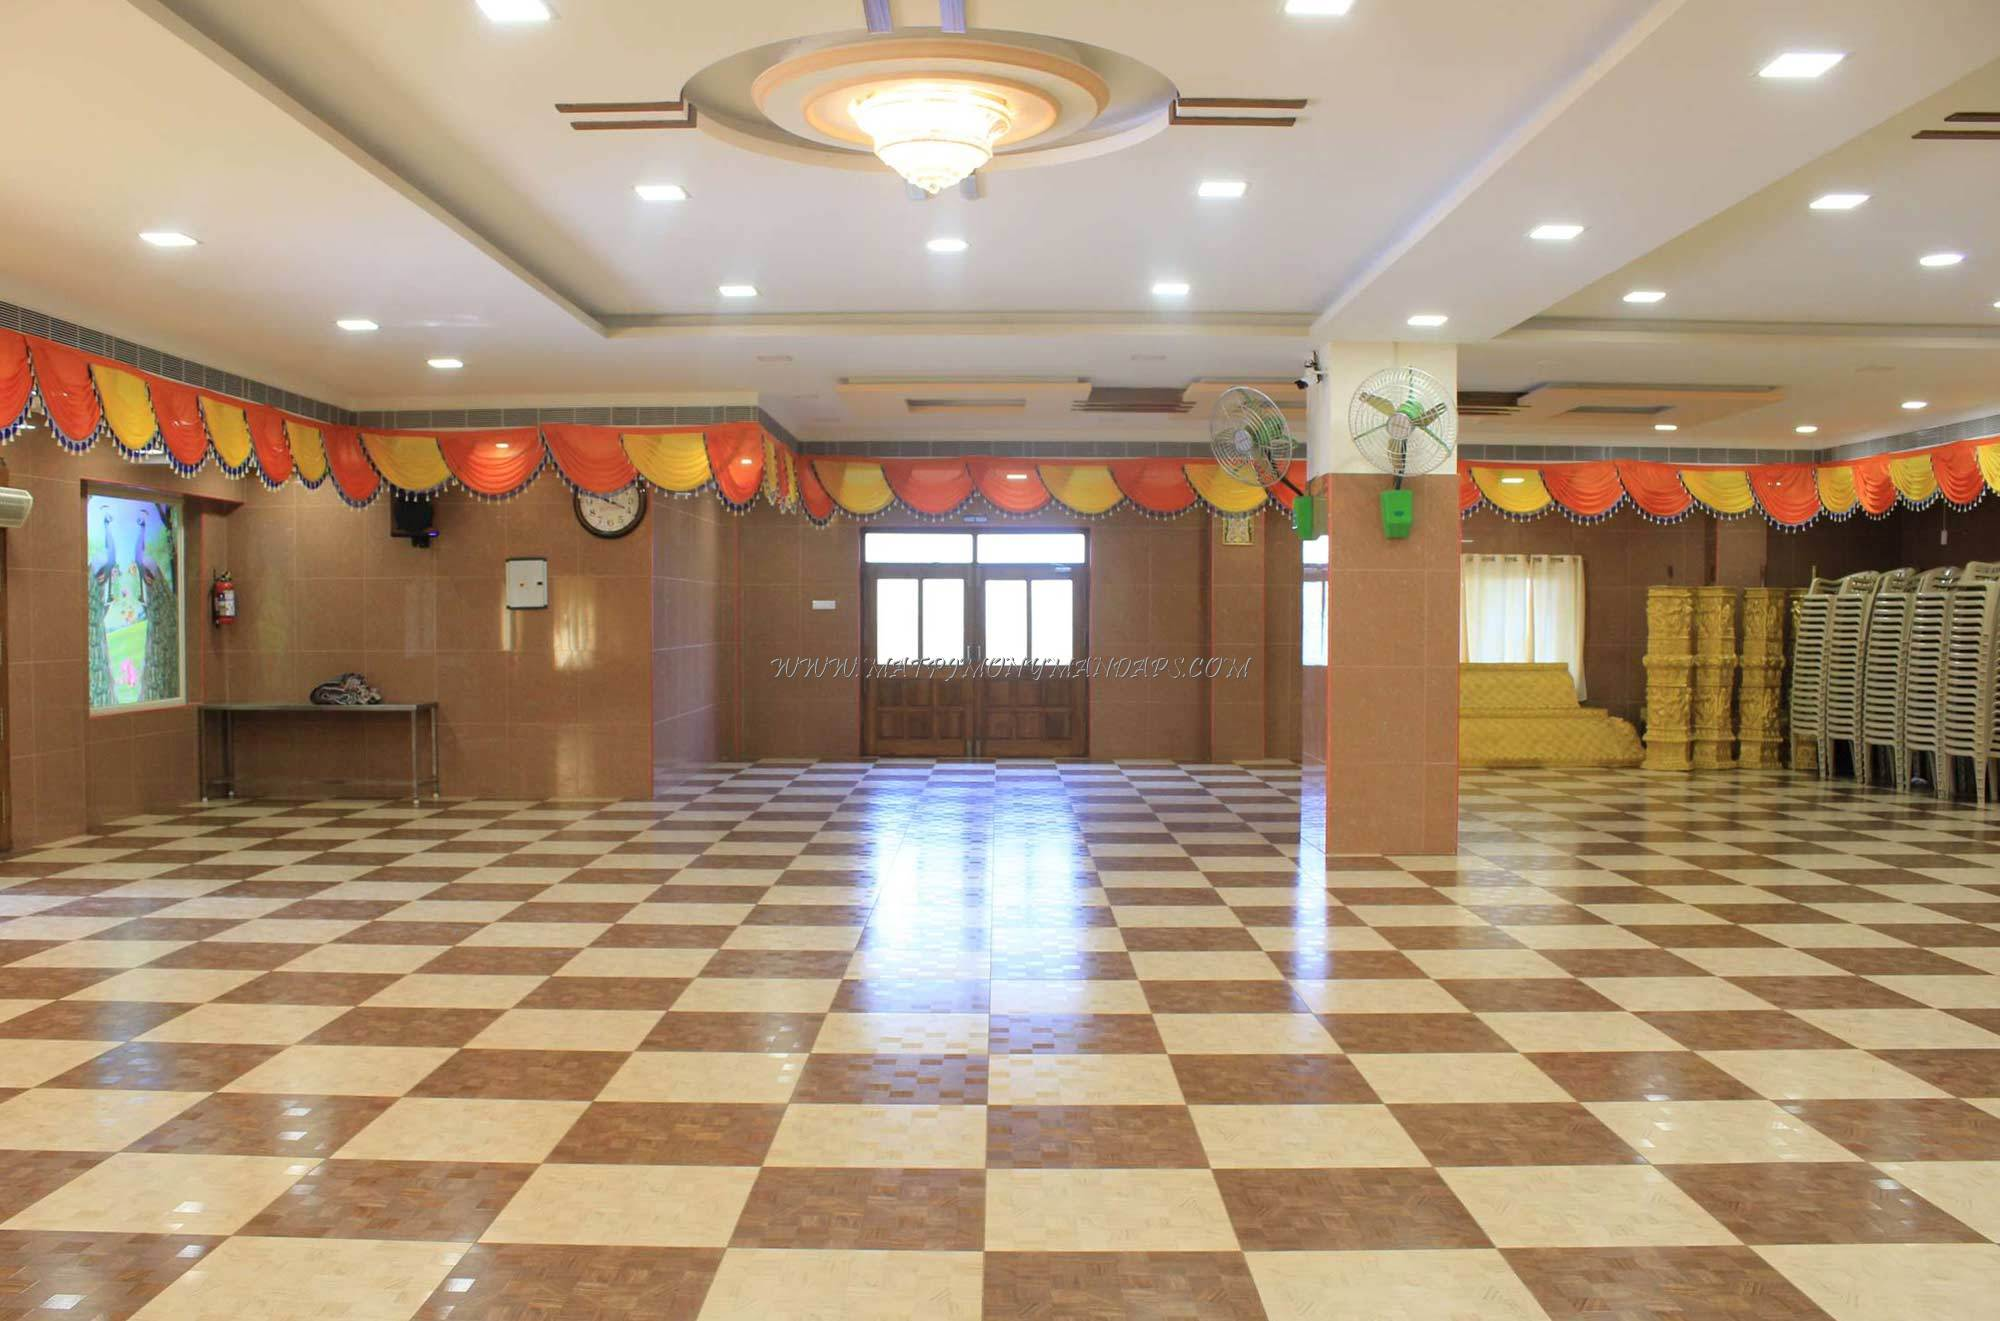 Find the availability of the Shri Varadha Mahal (A/C) in Ambattur, Chennai and avail special offers